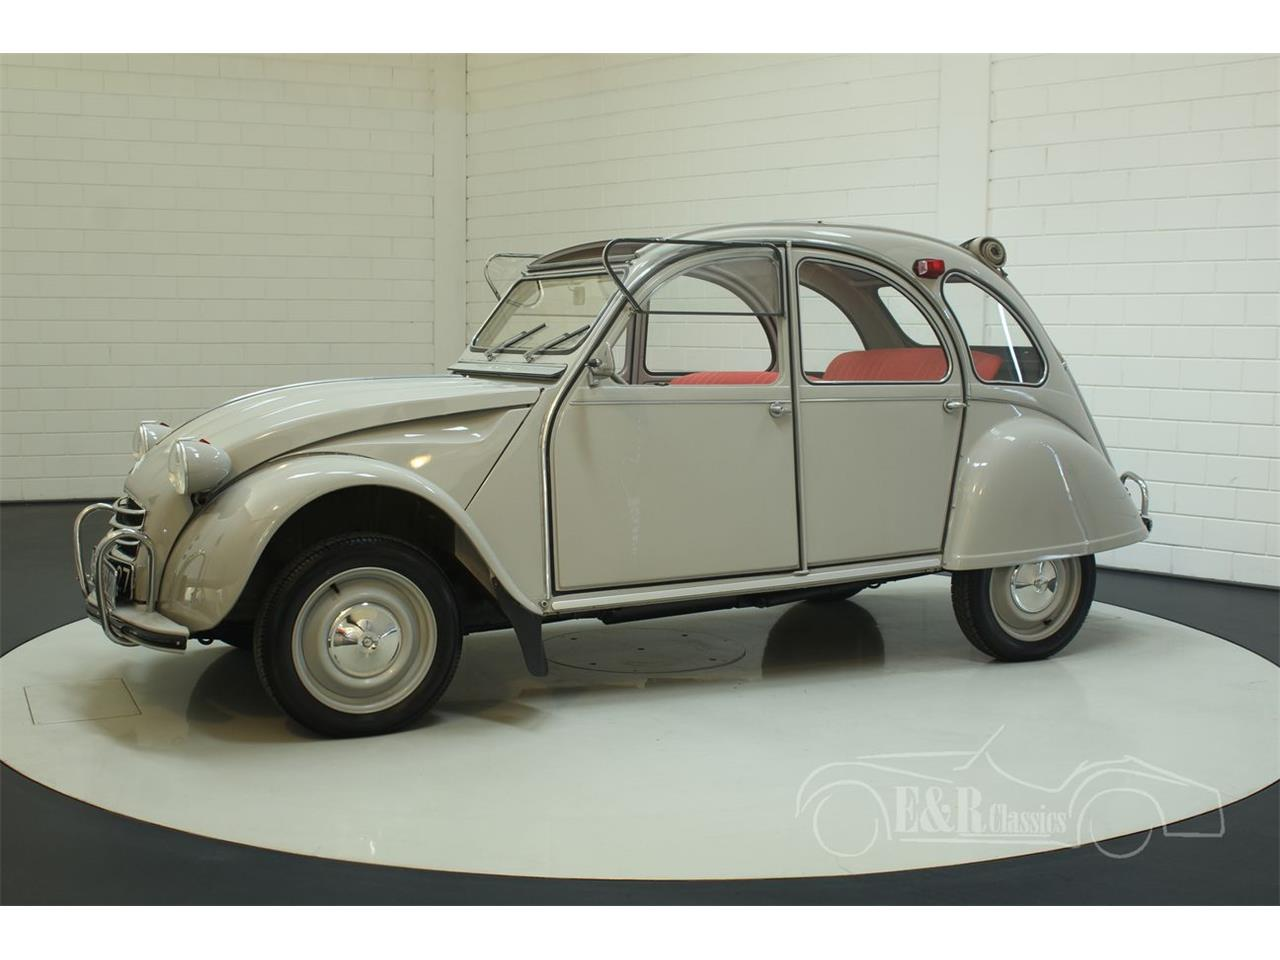 Large Picture of Classic '66 Citroen 2CV located in - Keine Angabe - - $22,550.00 Offered by E & R Classics - PGSV